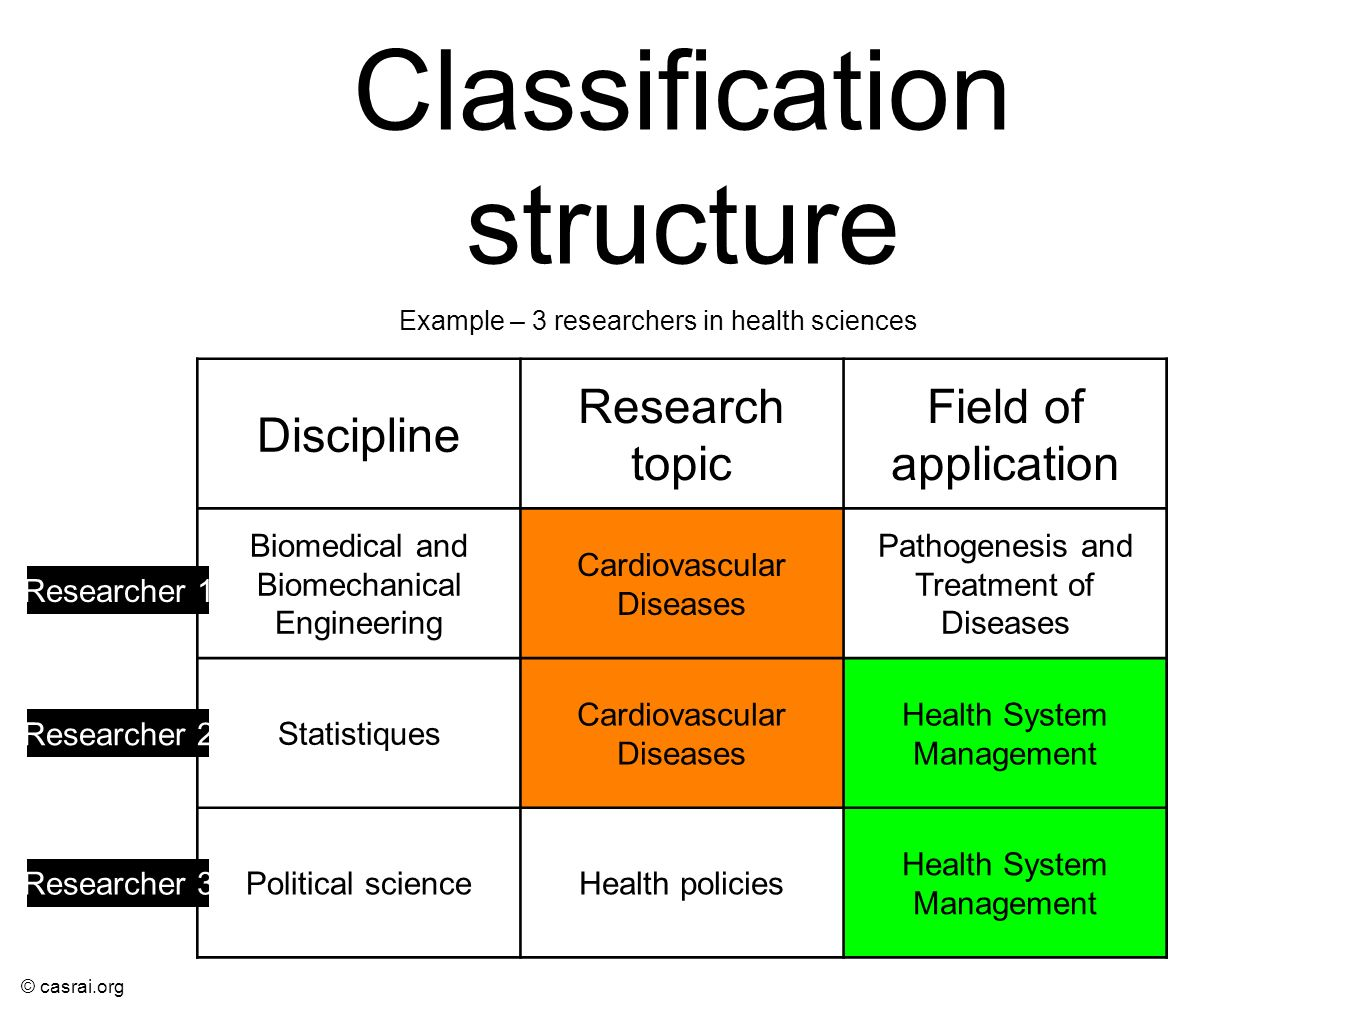 Classification structure